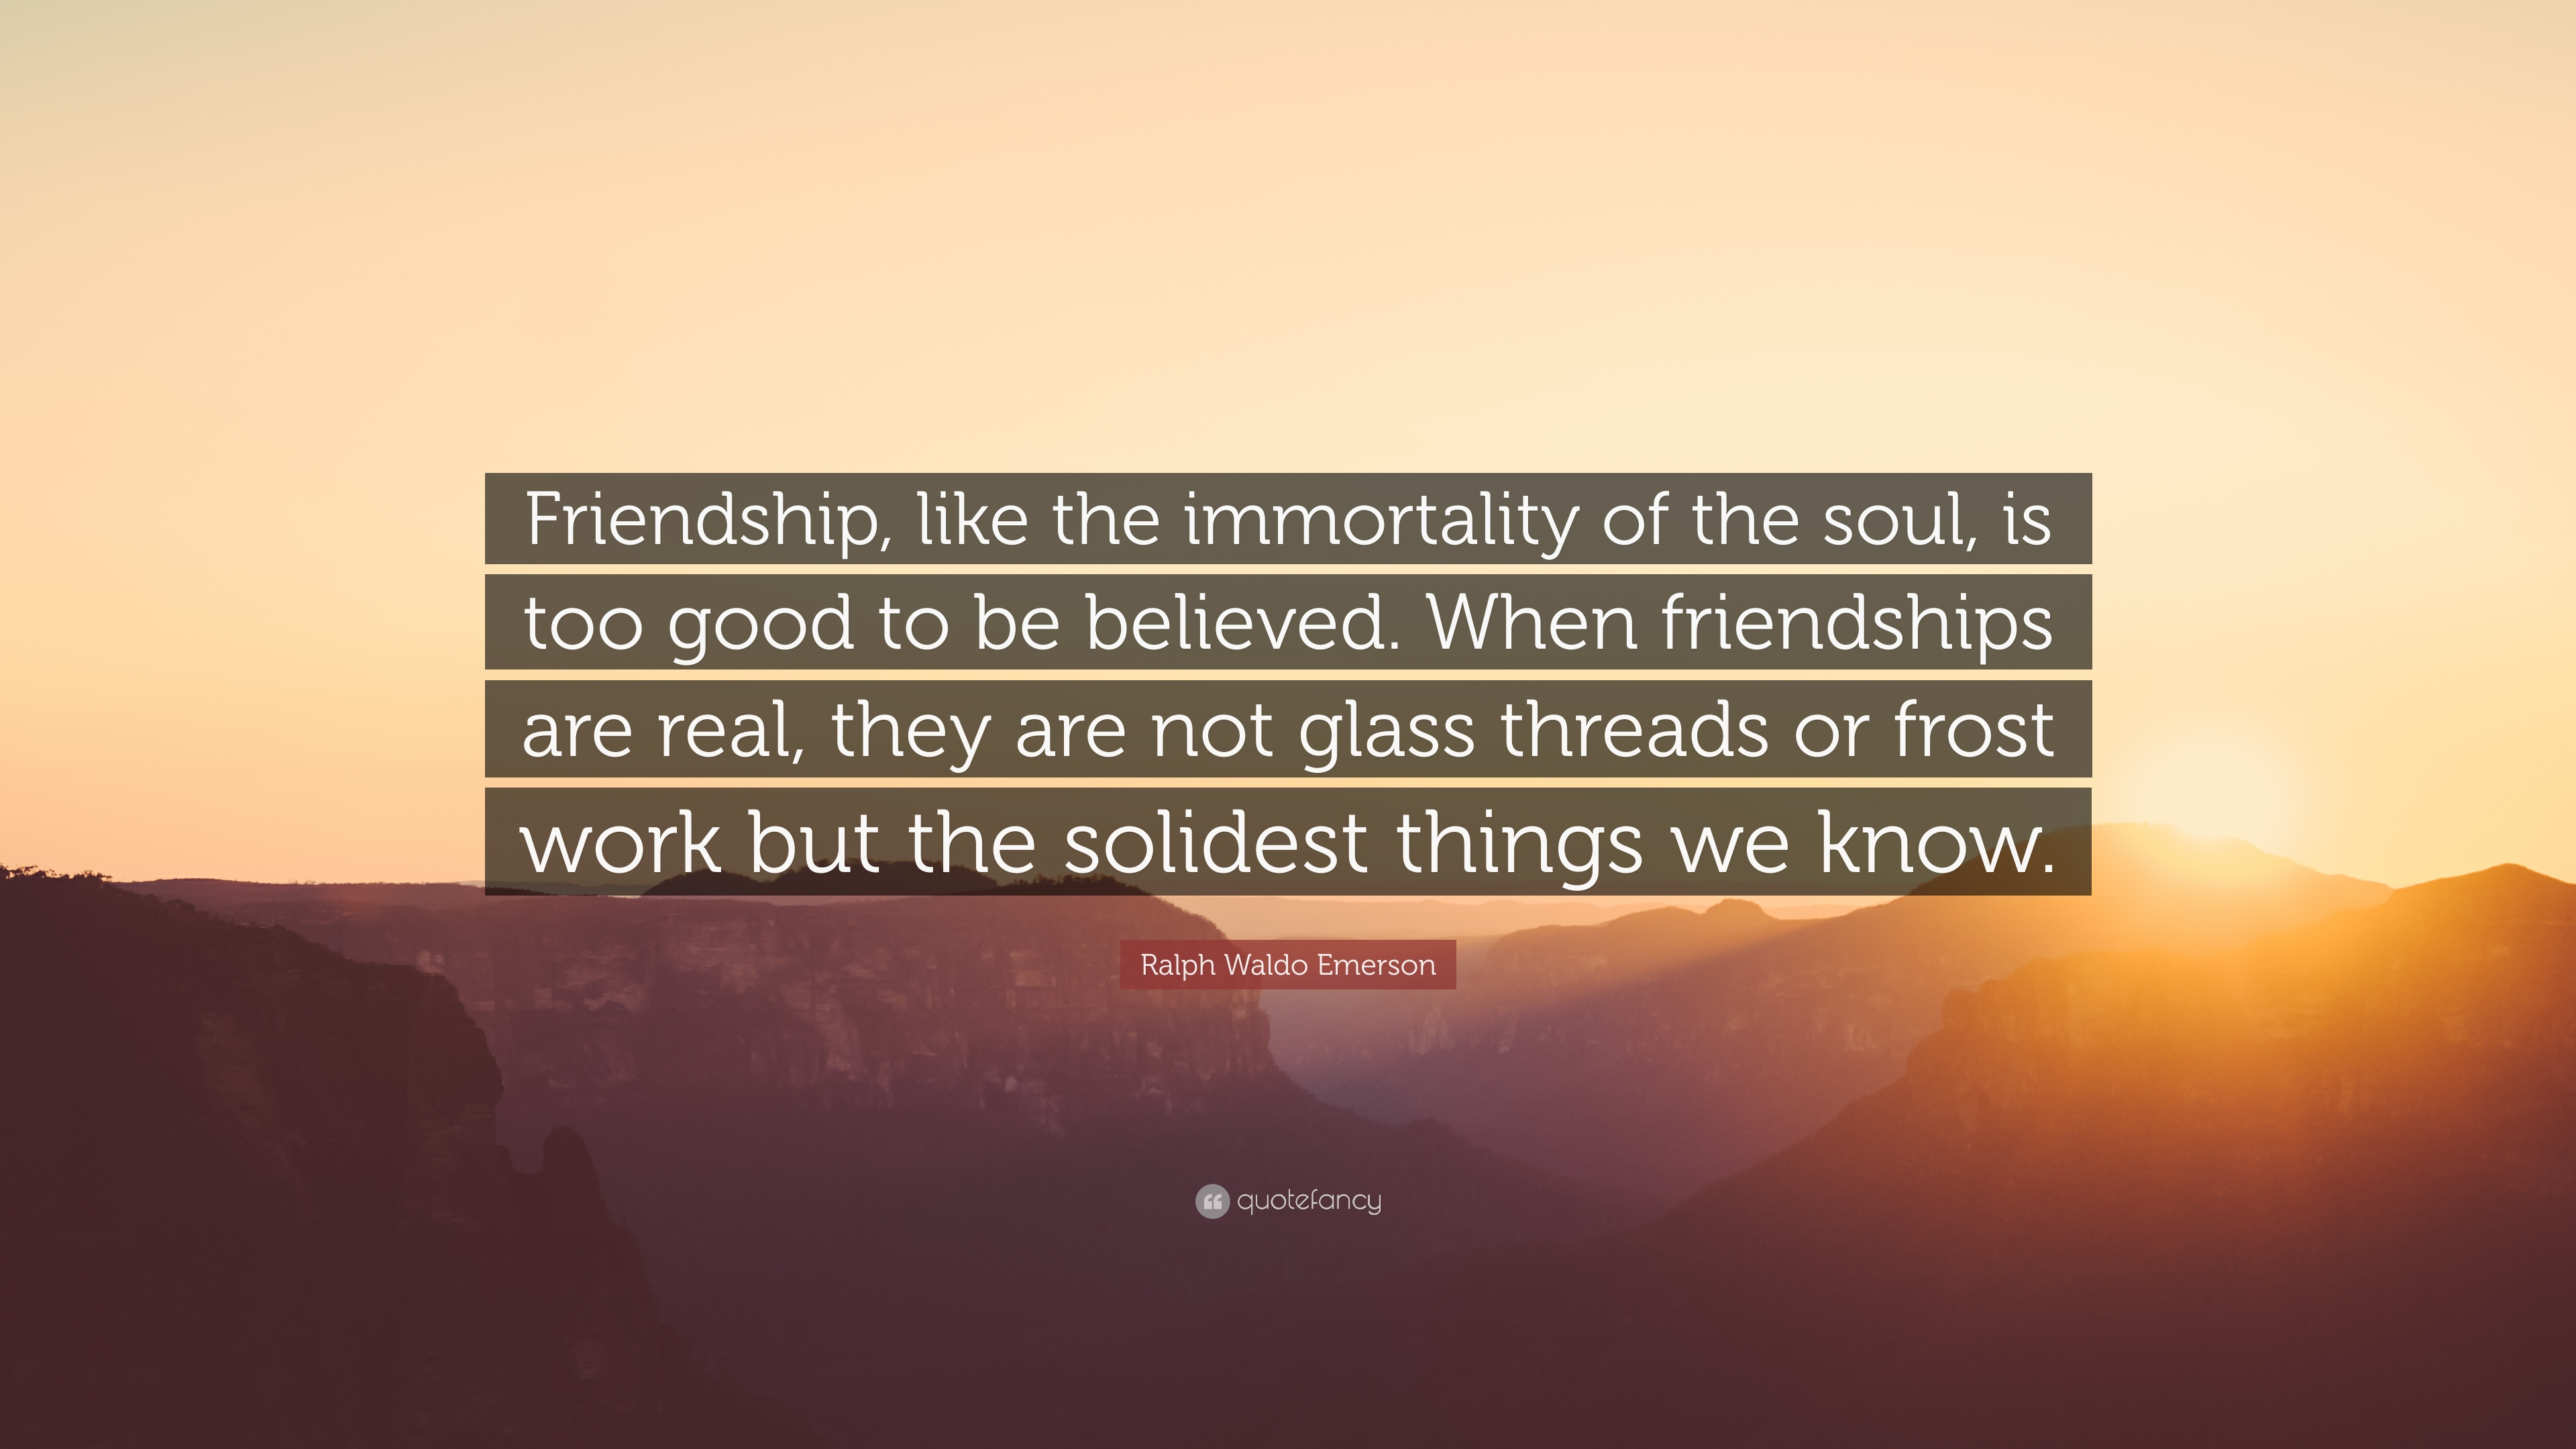 rw emerson essay friendship This collection has five ralph waldo emerson essays: self-reliance, manners, compensation, nature, and friendship they were published a few years apart but have little intrinsic connection the combination seems random.